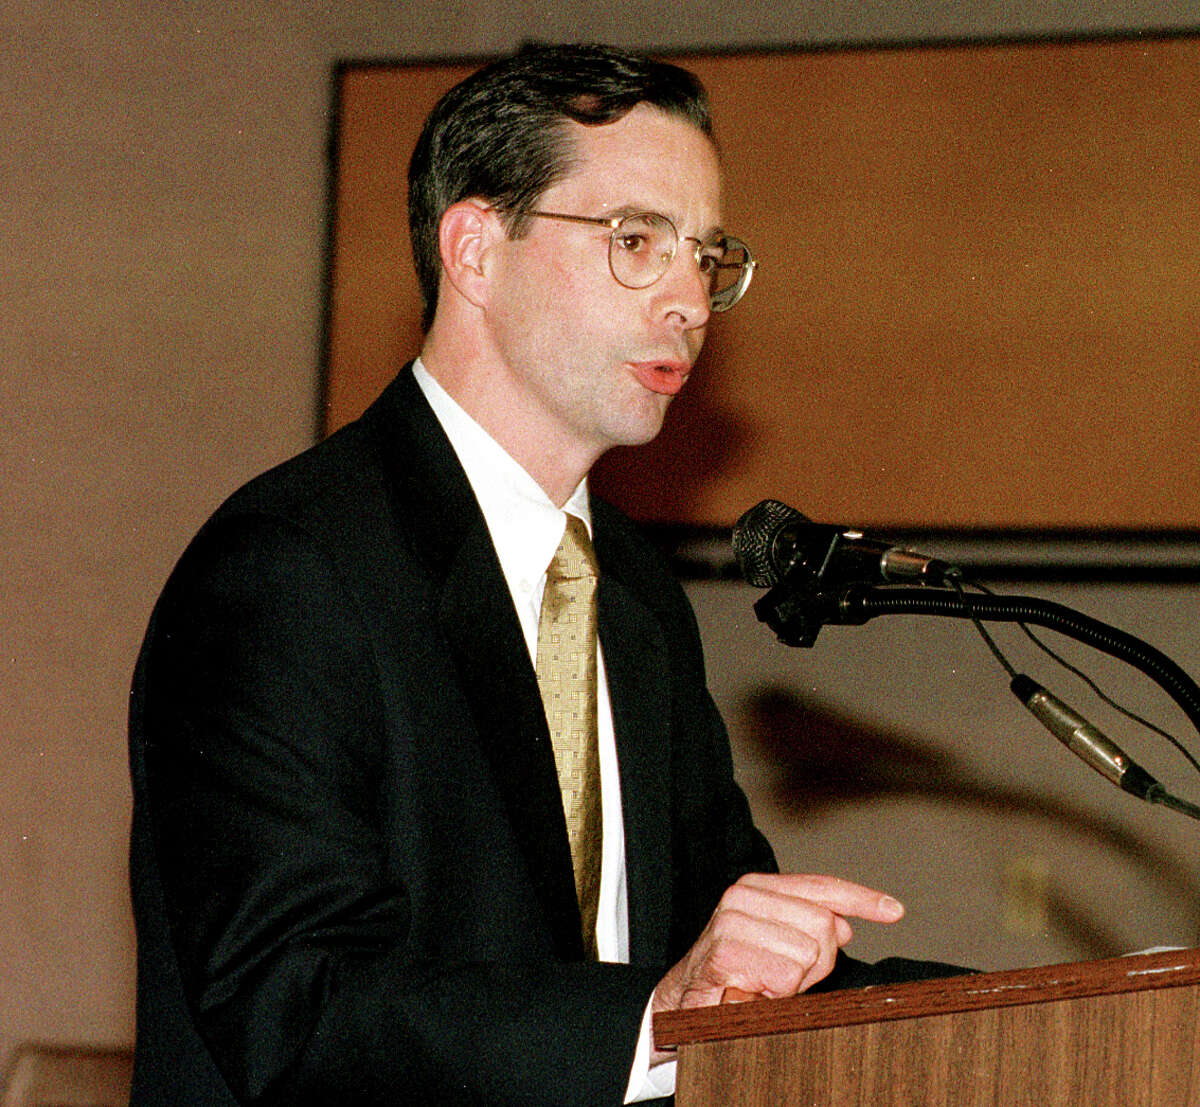 Paul Clyne was an Albany County assistant district attorney at the time of Gary Evans' death in 1998. (Times Union Staff Photo by TOM LAPOINT)